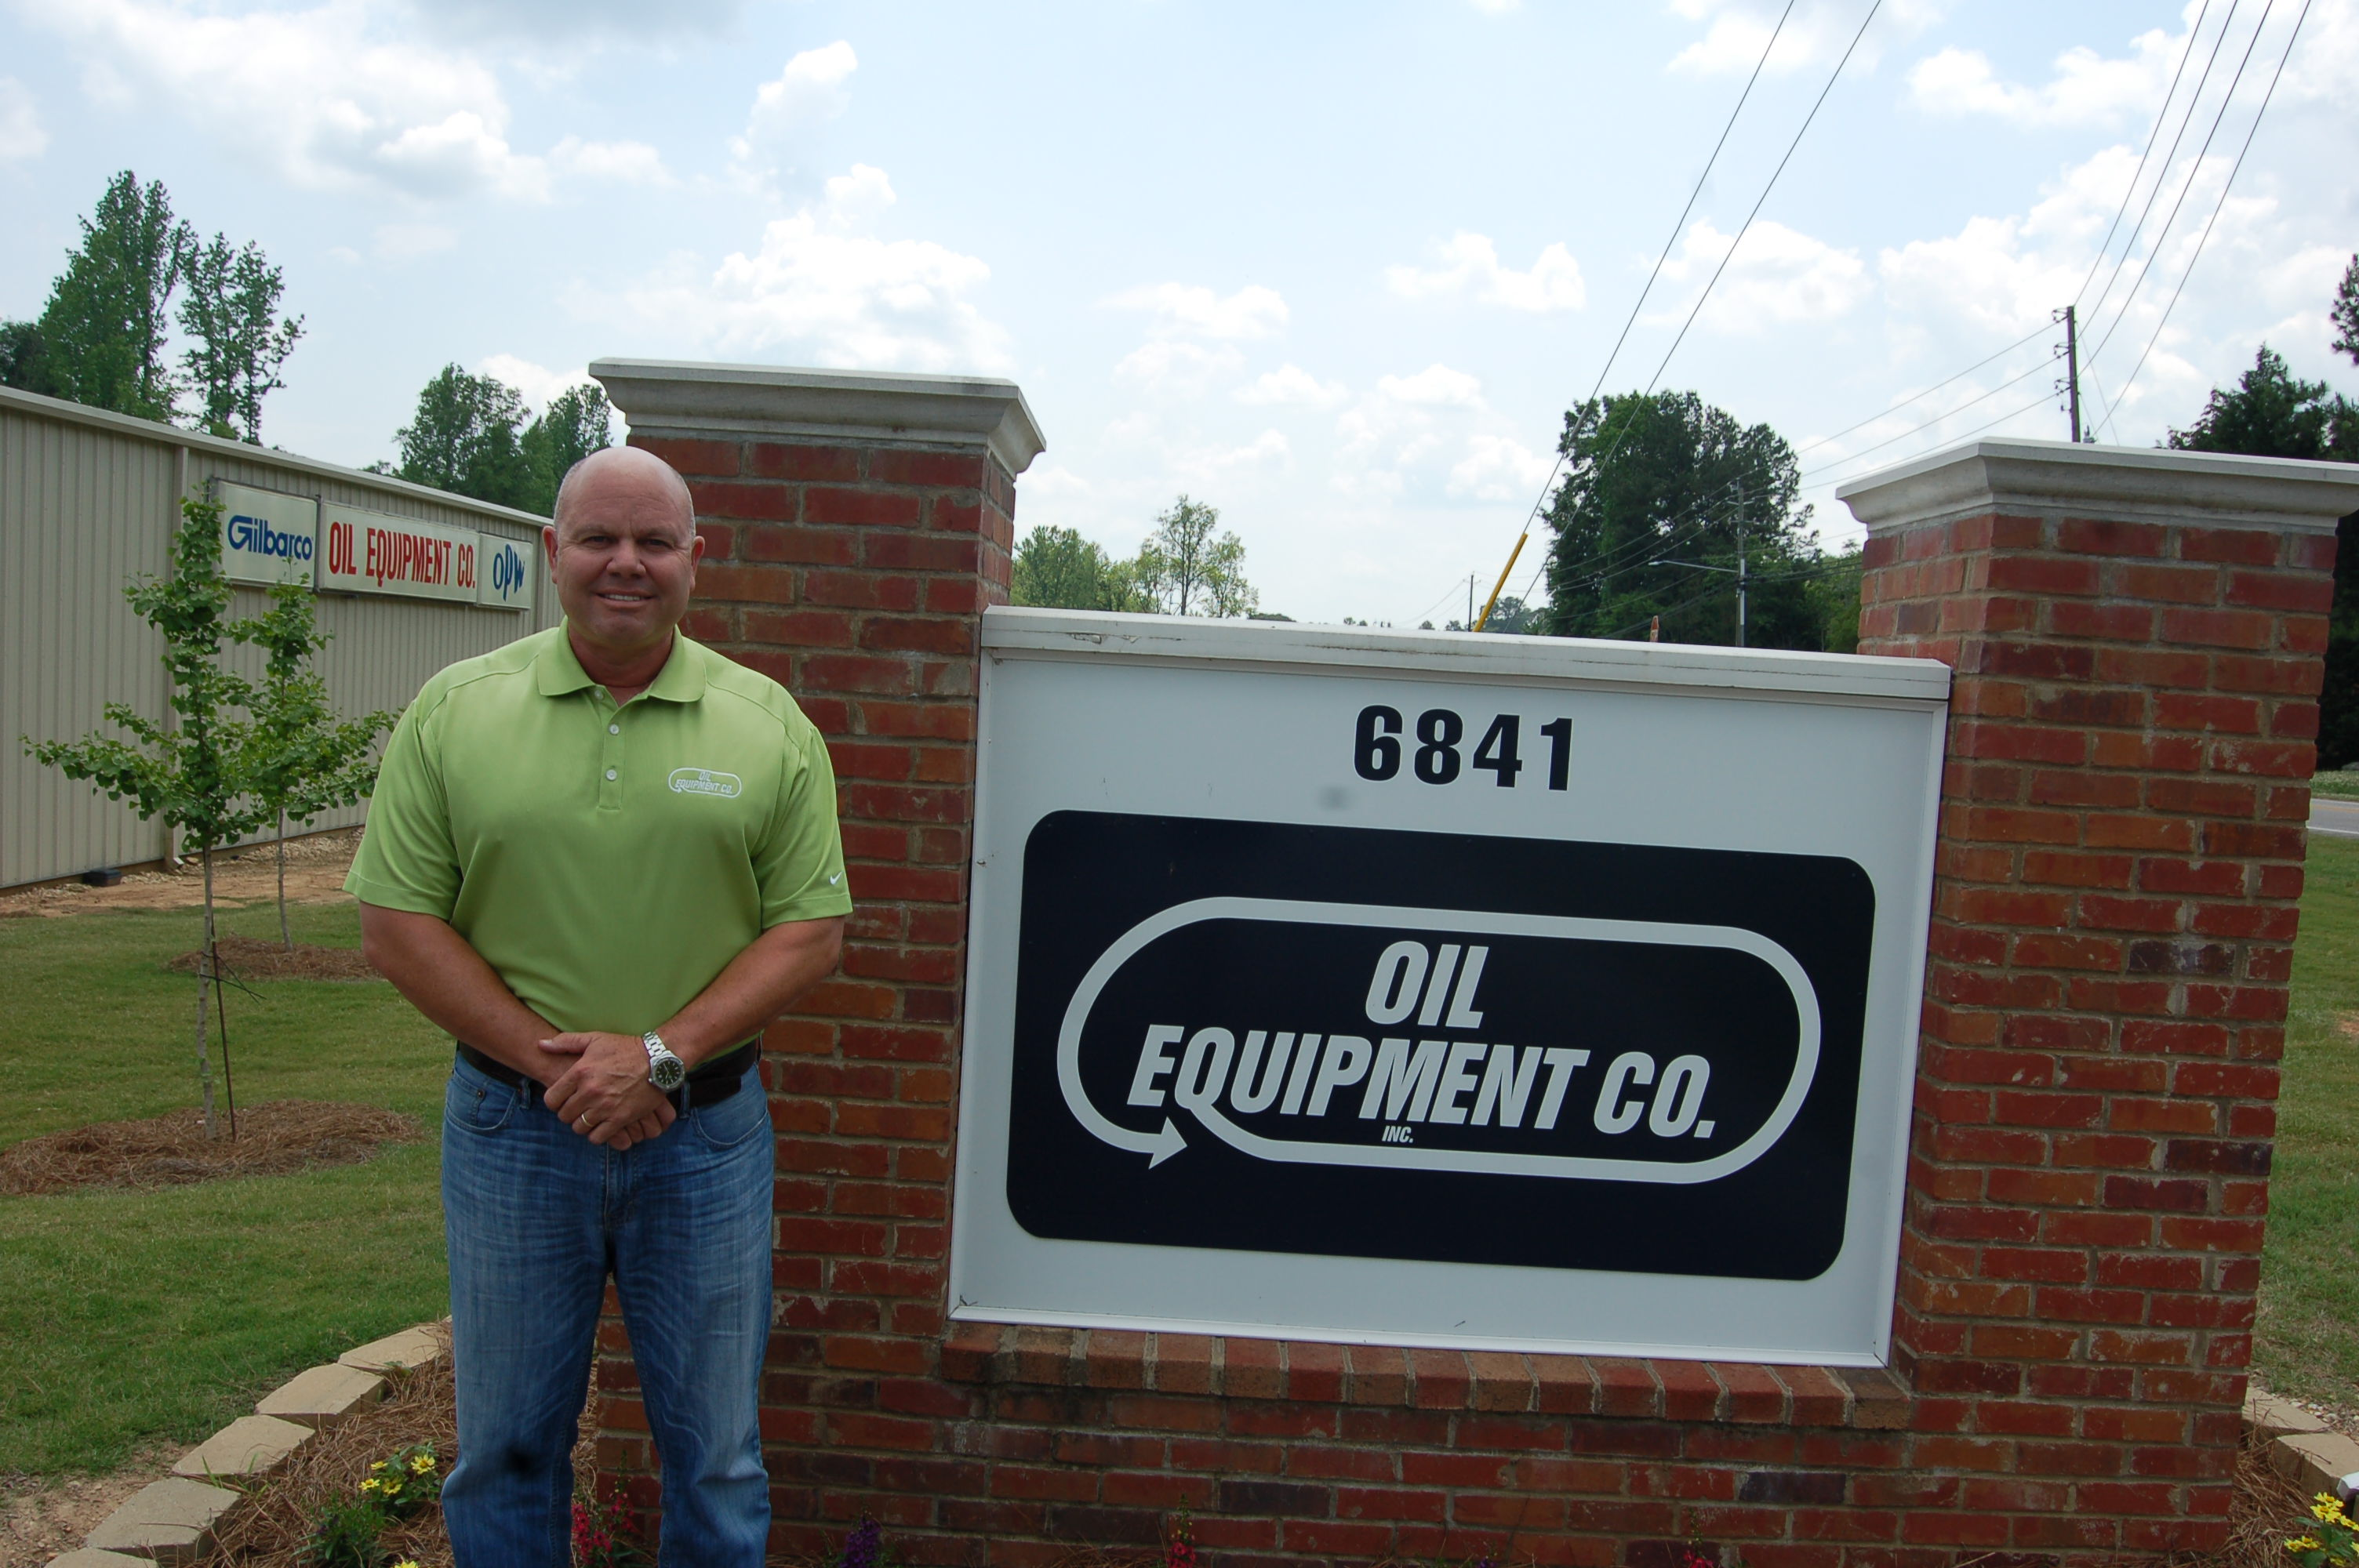 Oil Equipment Company: a versatile company in the oil, fuel industry